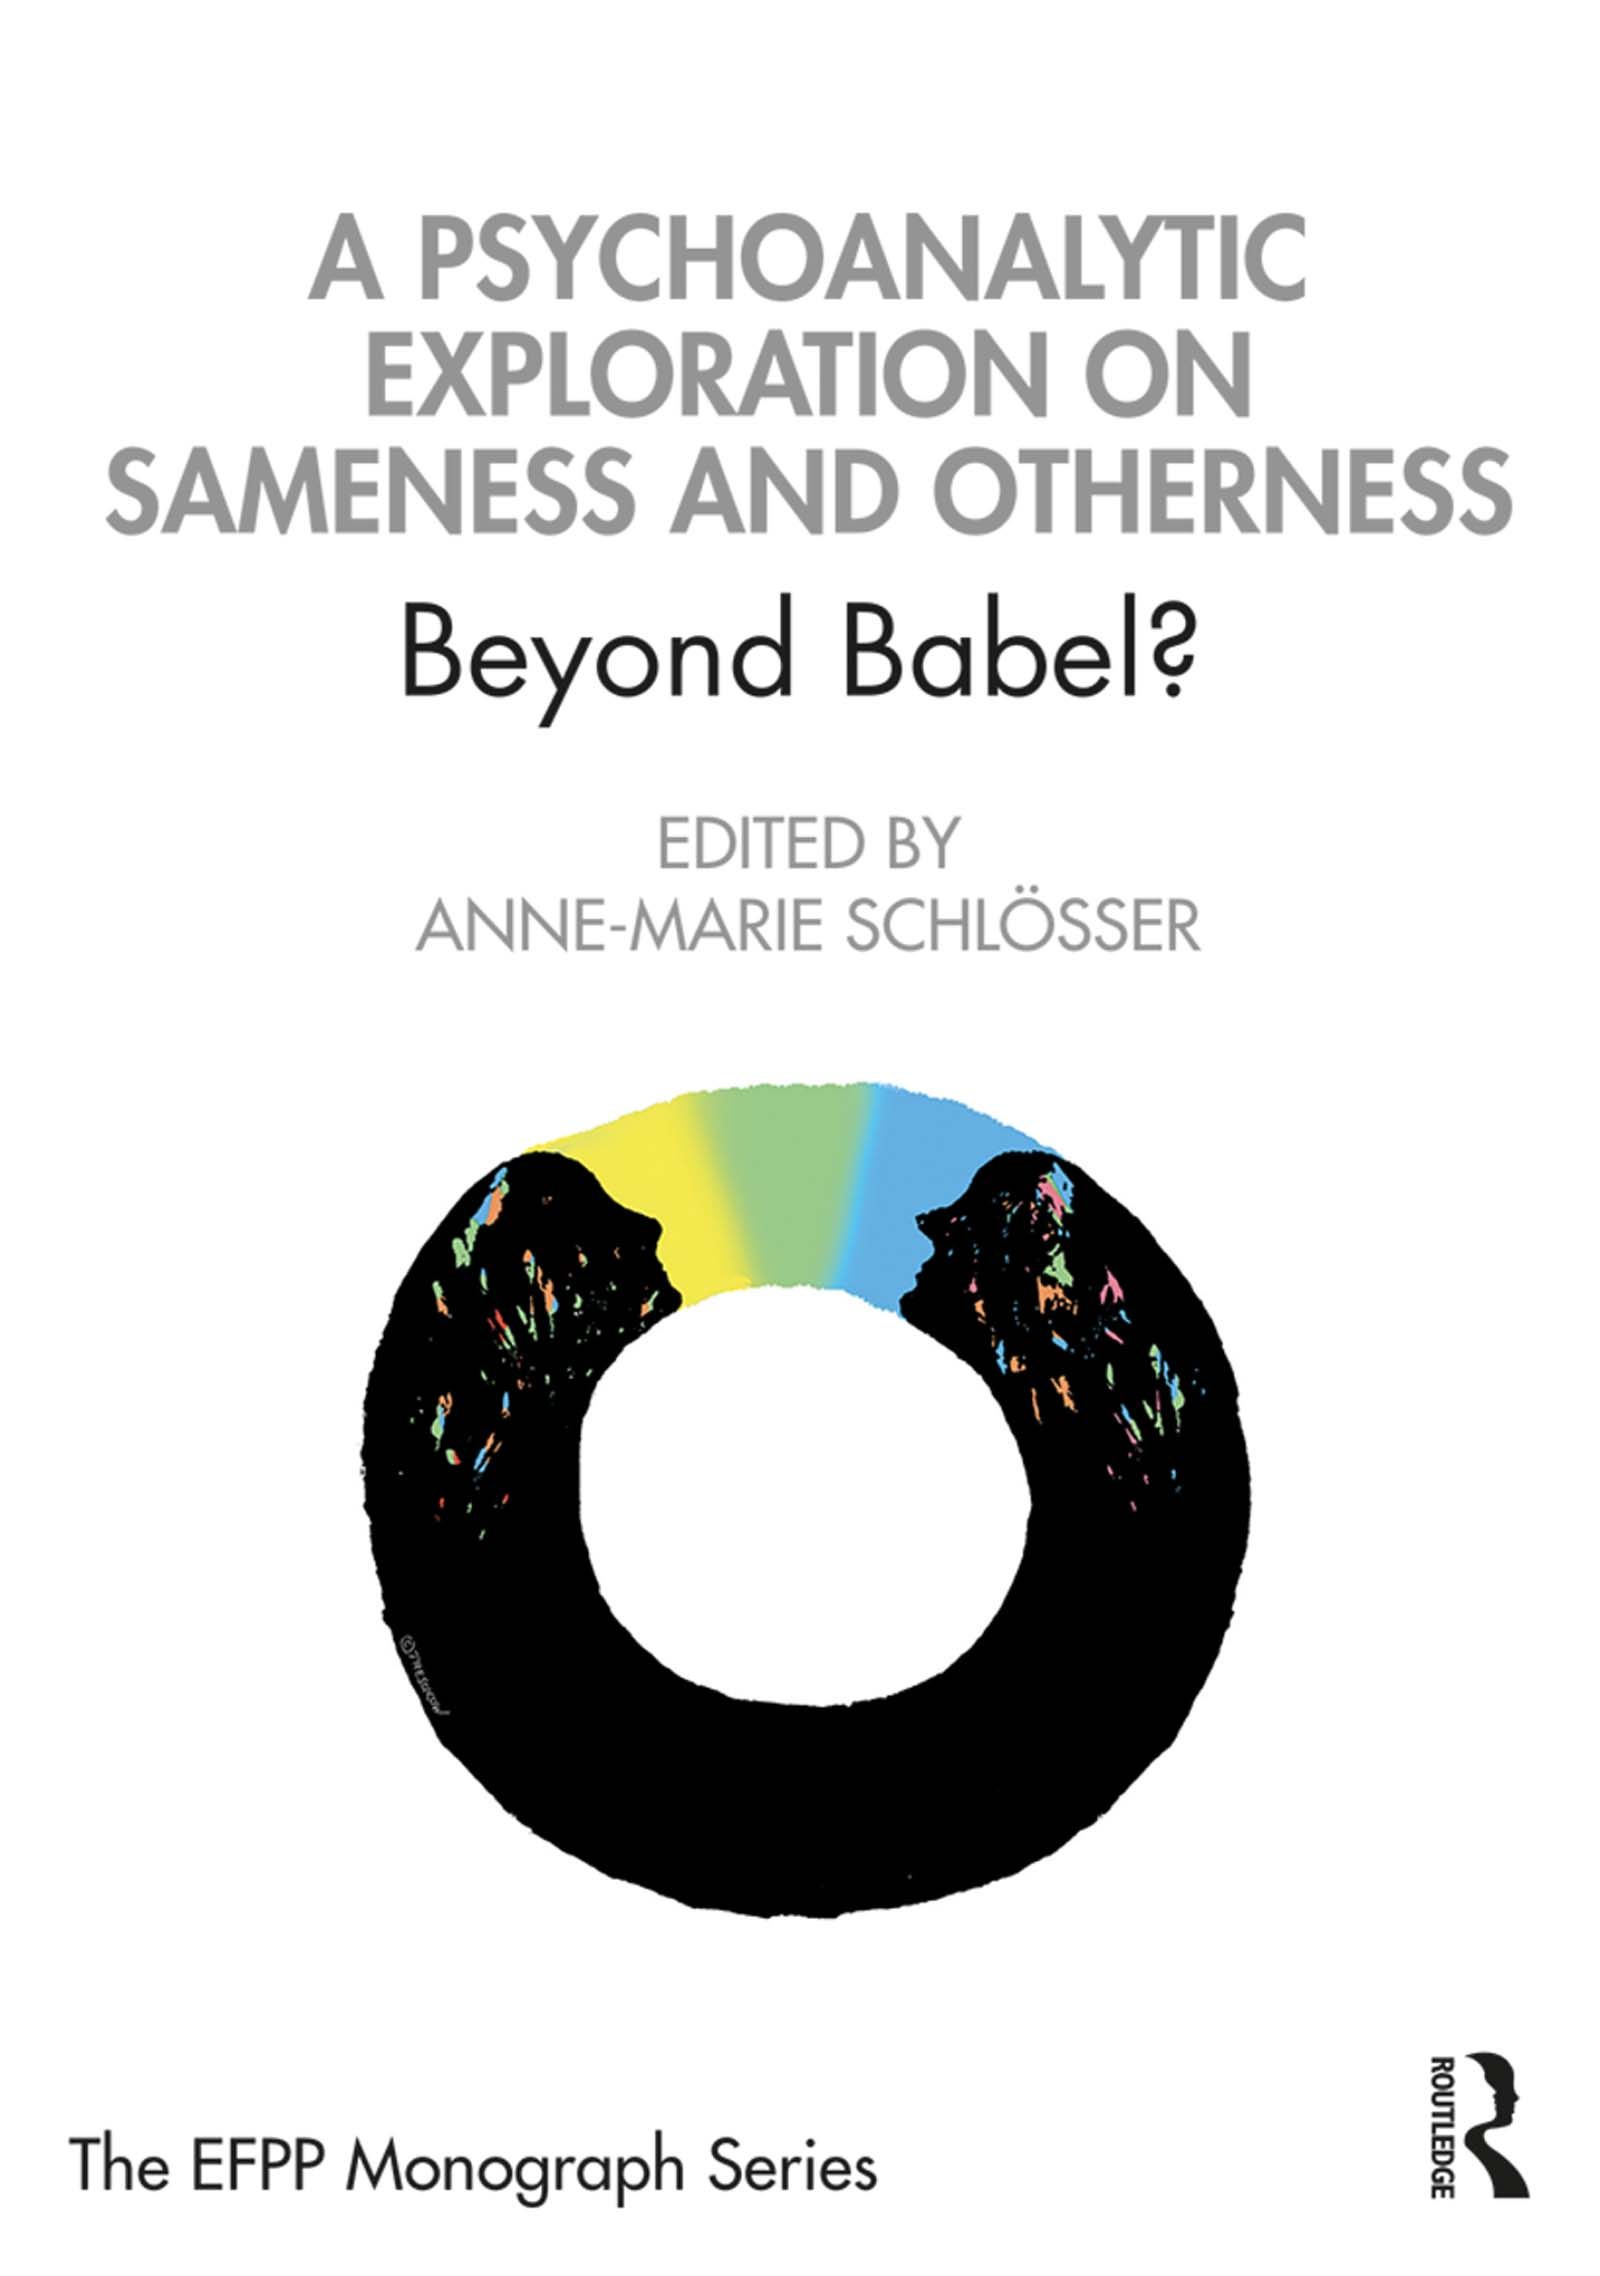 A Psychoanalytic Exploration On Sameness and Otherness: Beyond Babel? book cover